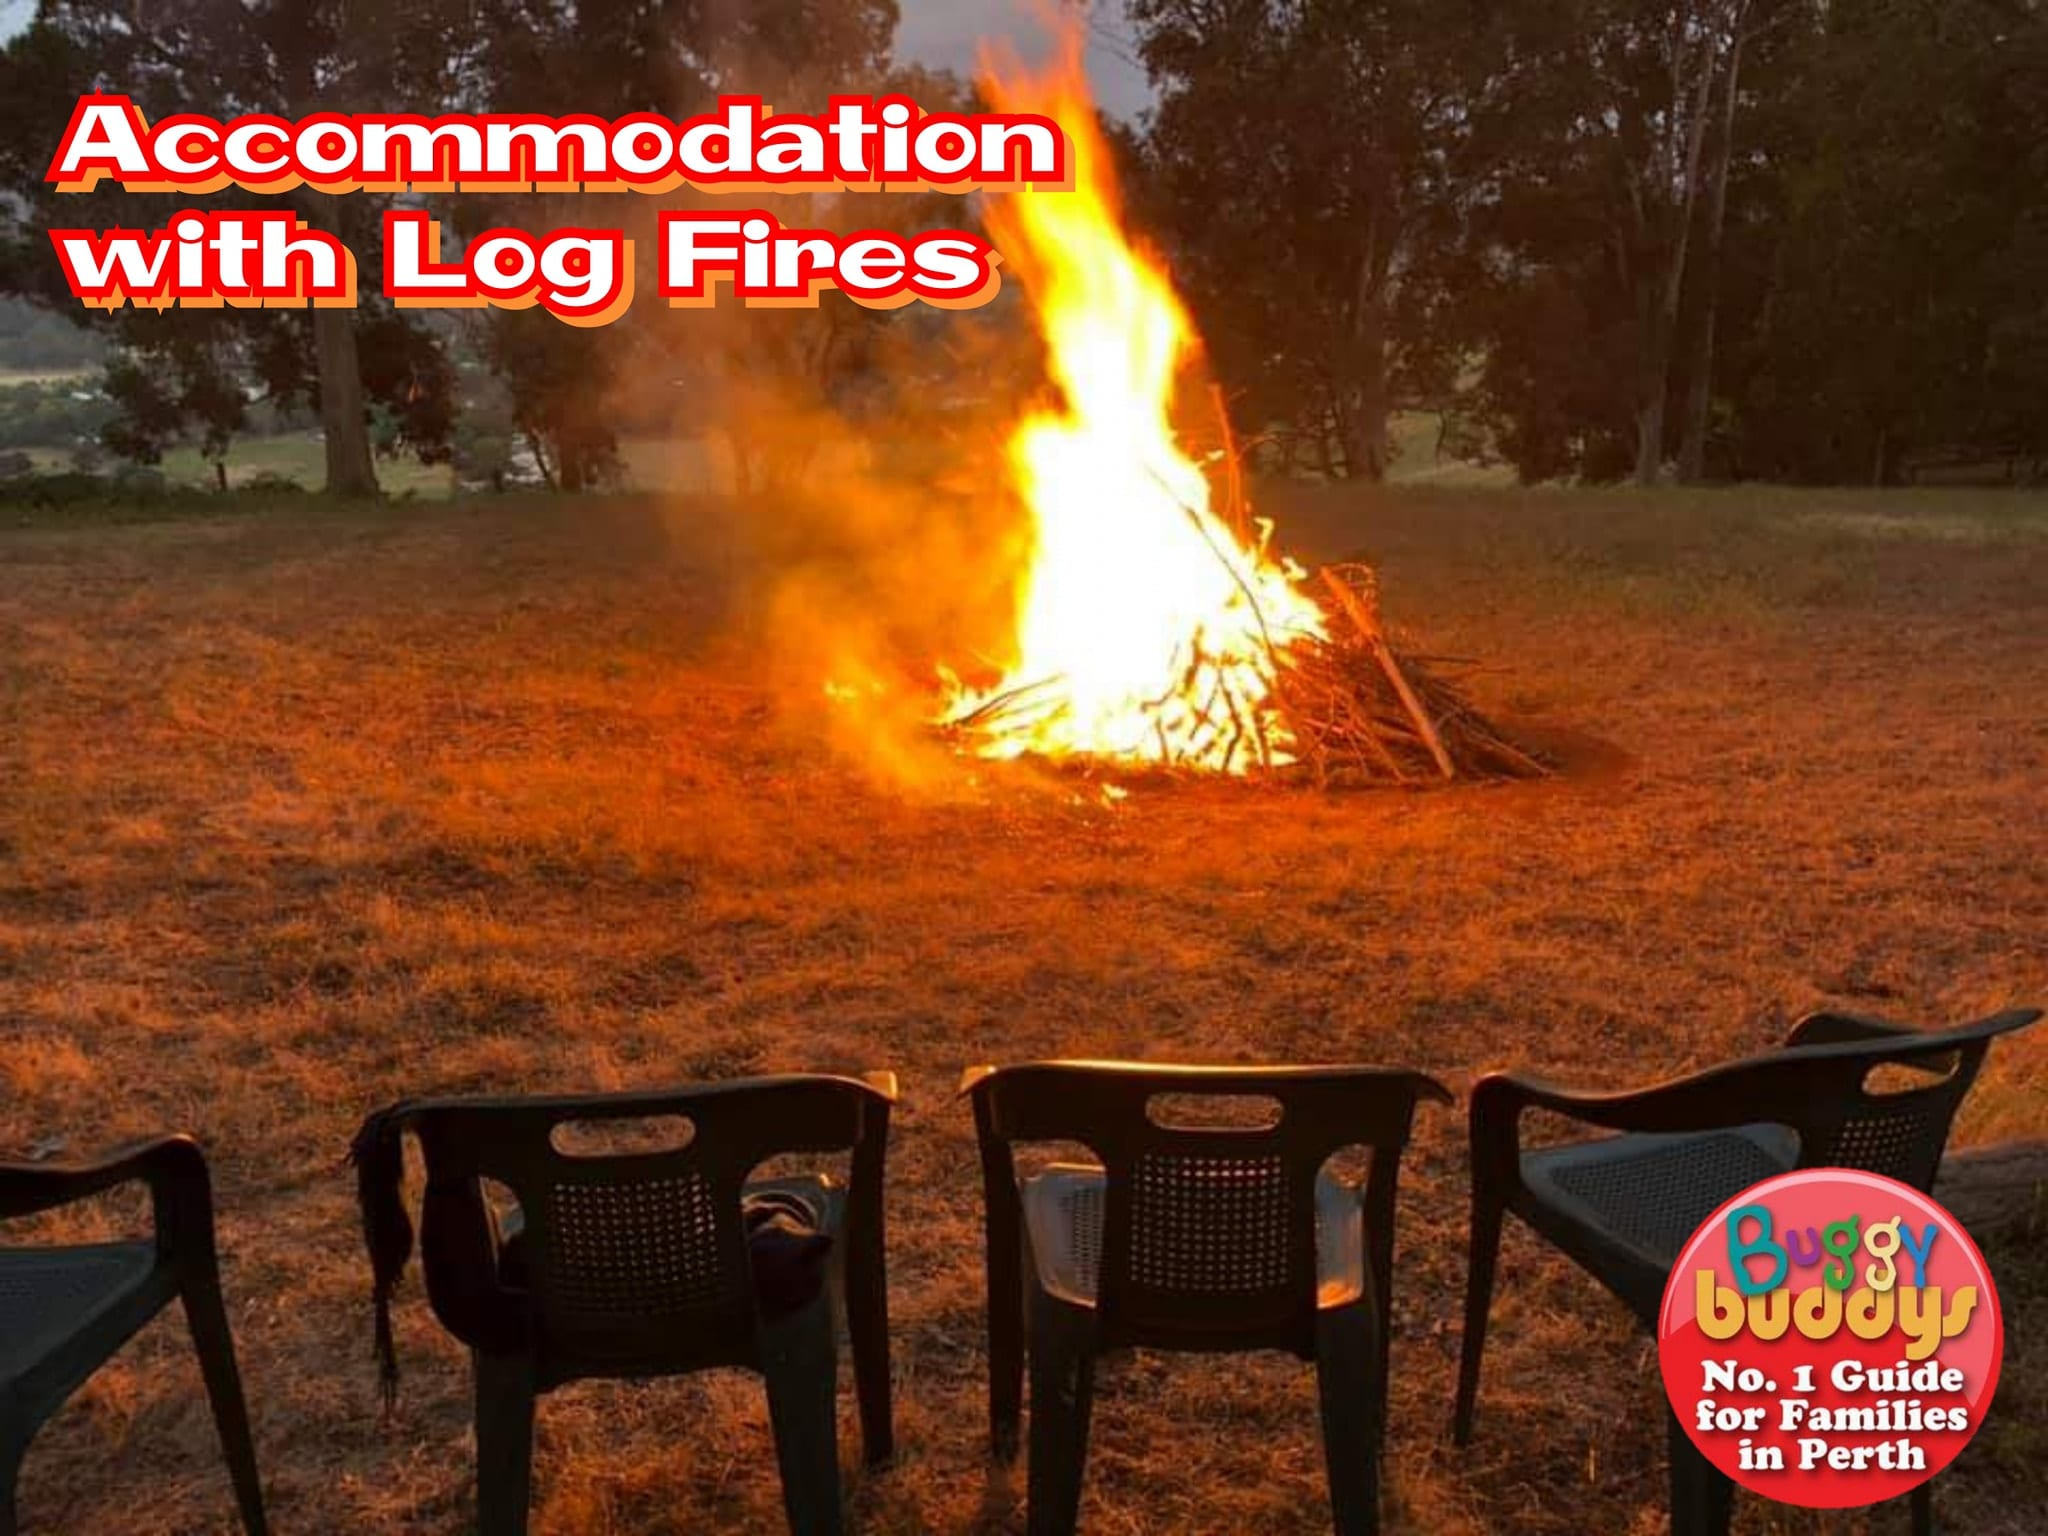 Accommodation with Log Fires